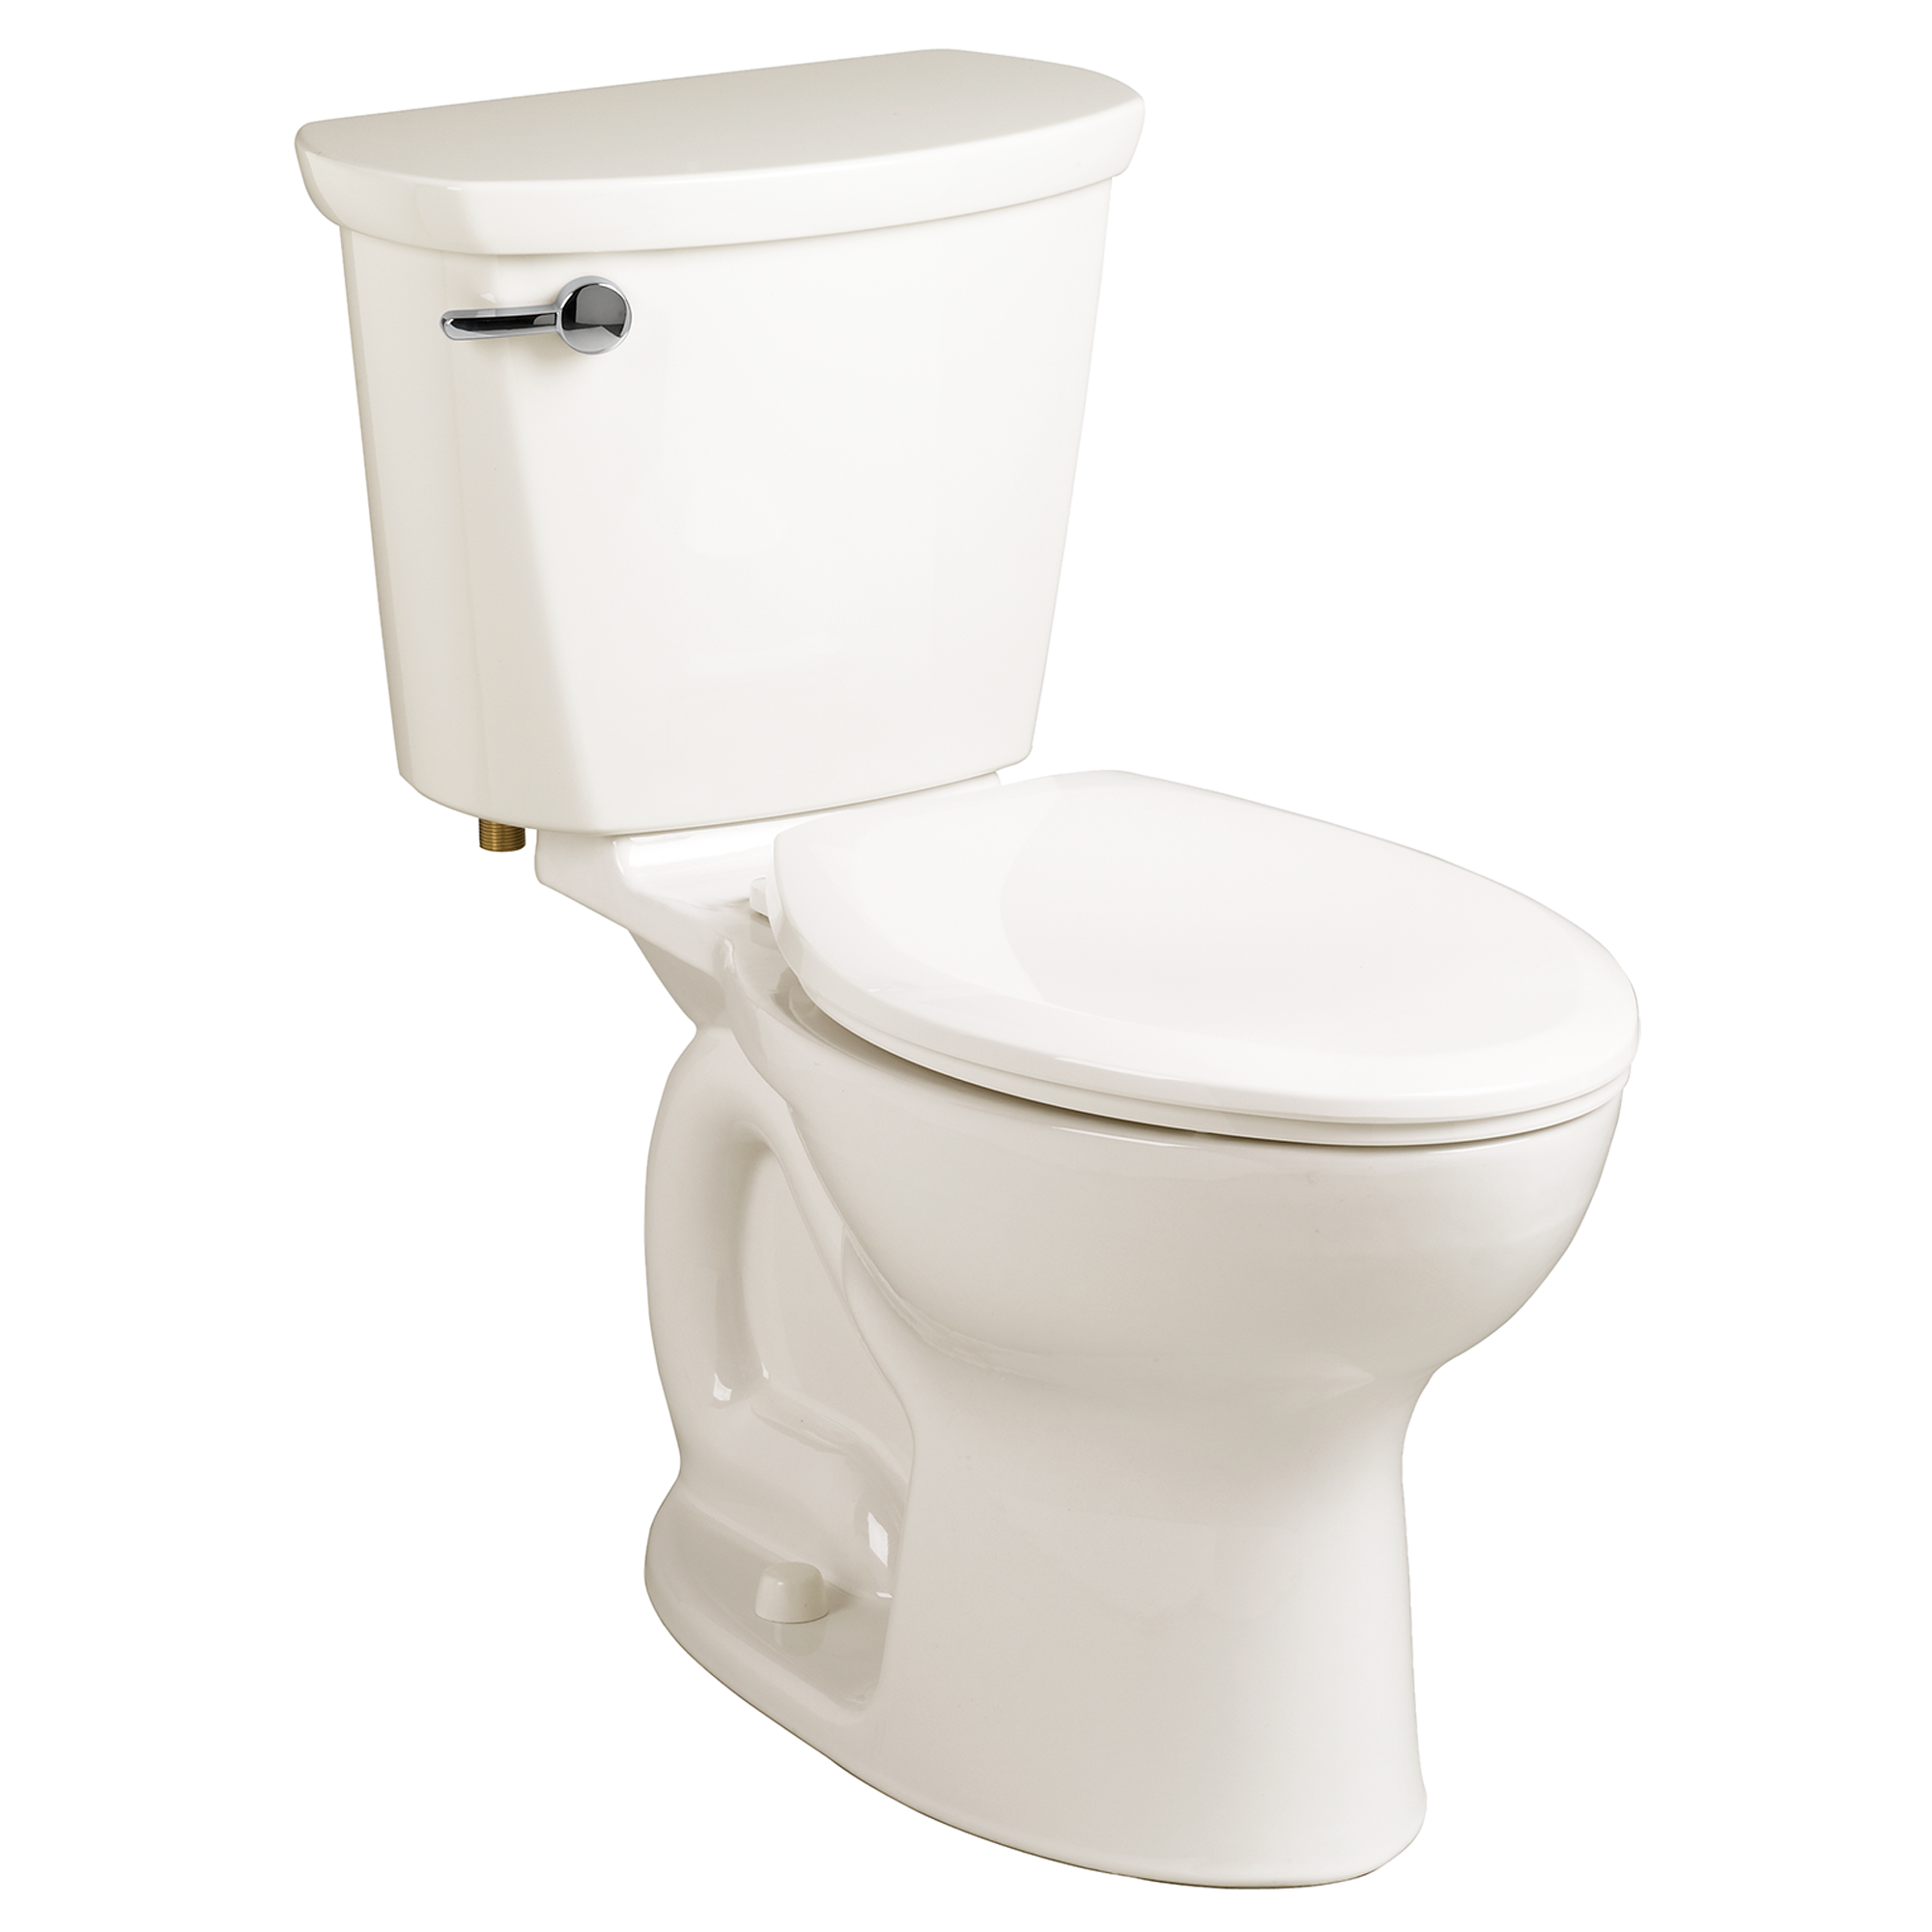 Mayfair Toilet Seats | Cushioned Seats | Cushioned Toilet Seats